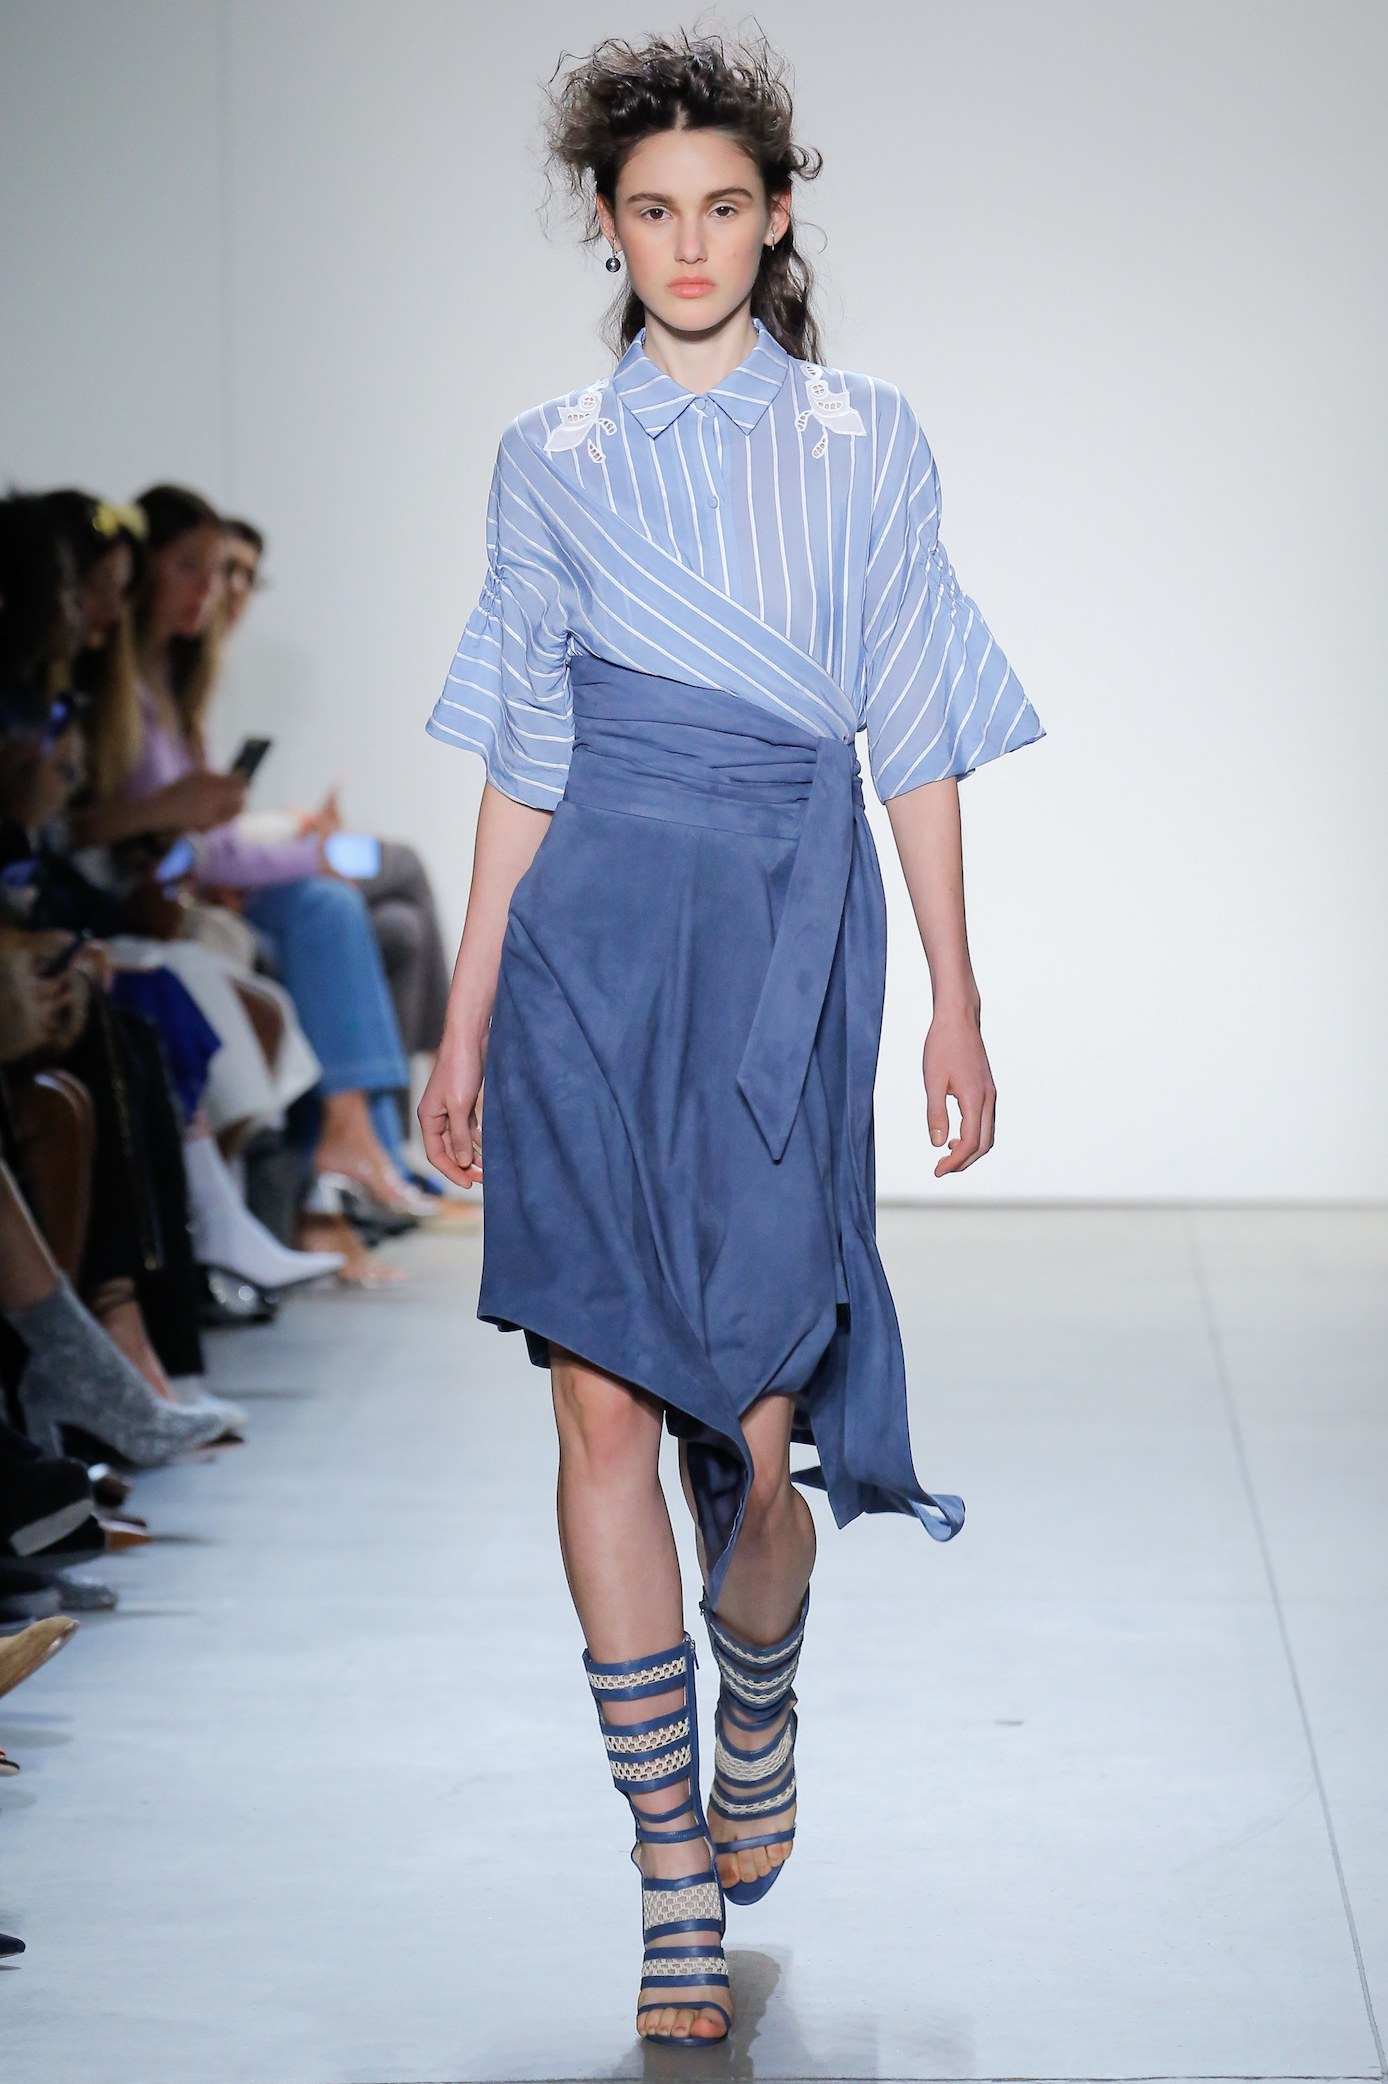 53c6ea4ee0c New York Fashion Week Day 4  Top Shows Of NYFW